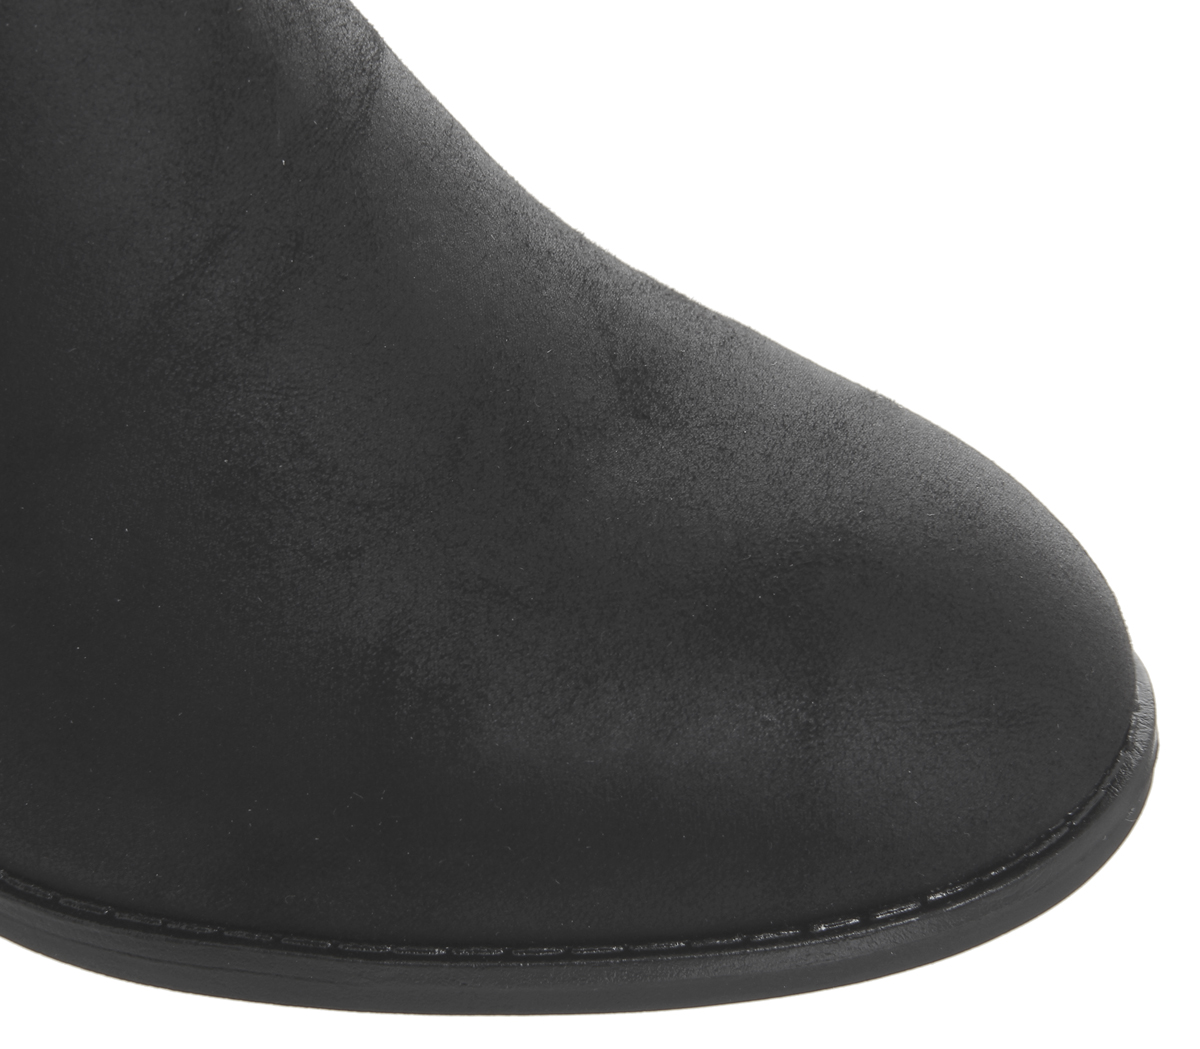 ebee229e1145b Womens Office Attract Ankle Strap Boots Black With Office Branded ...